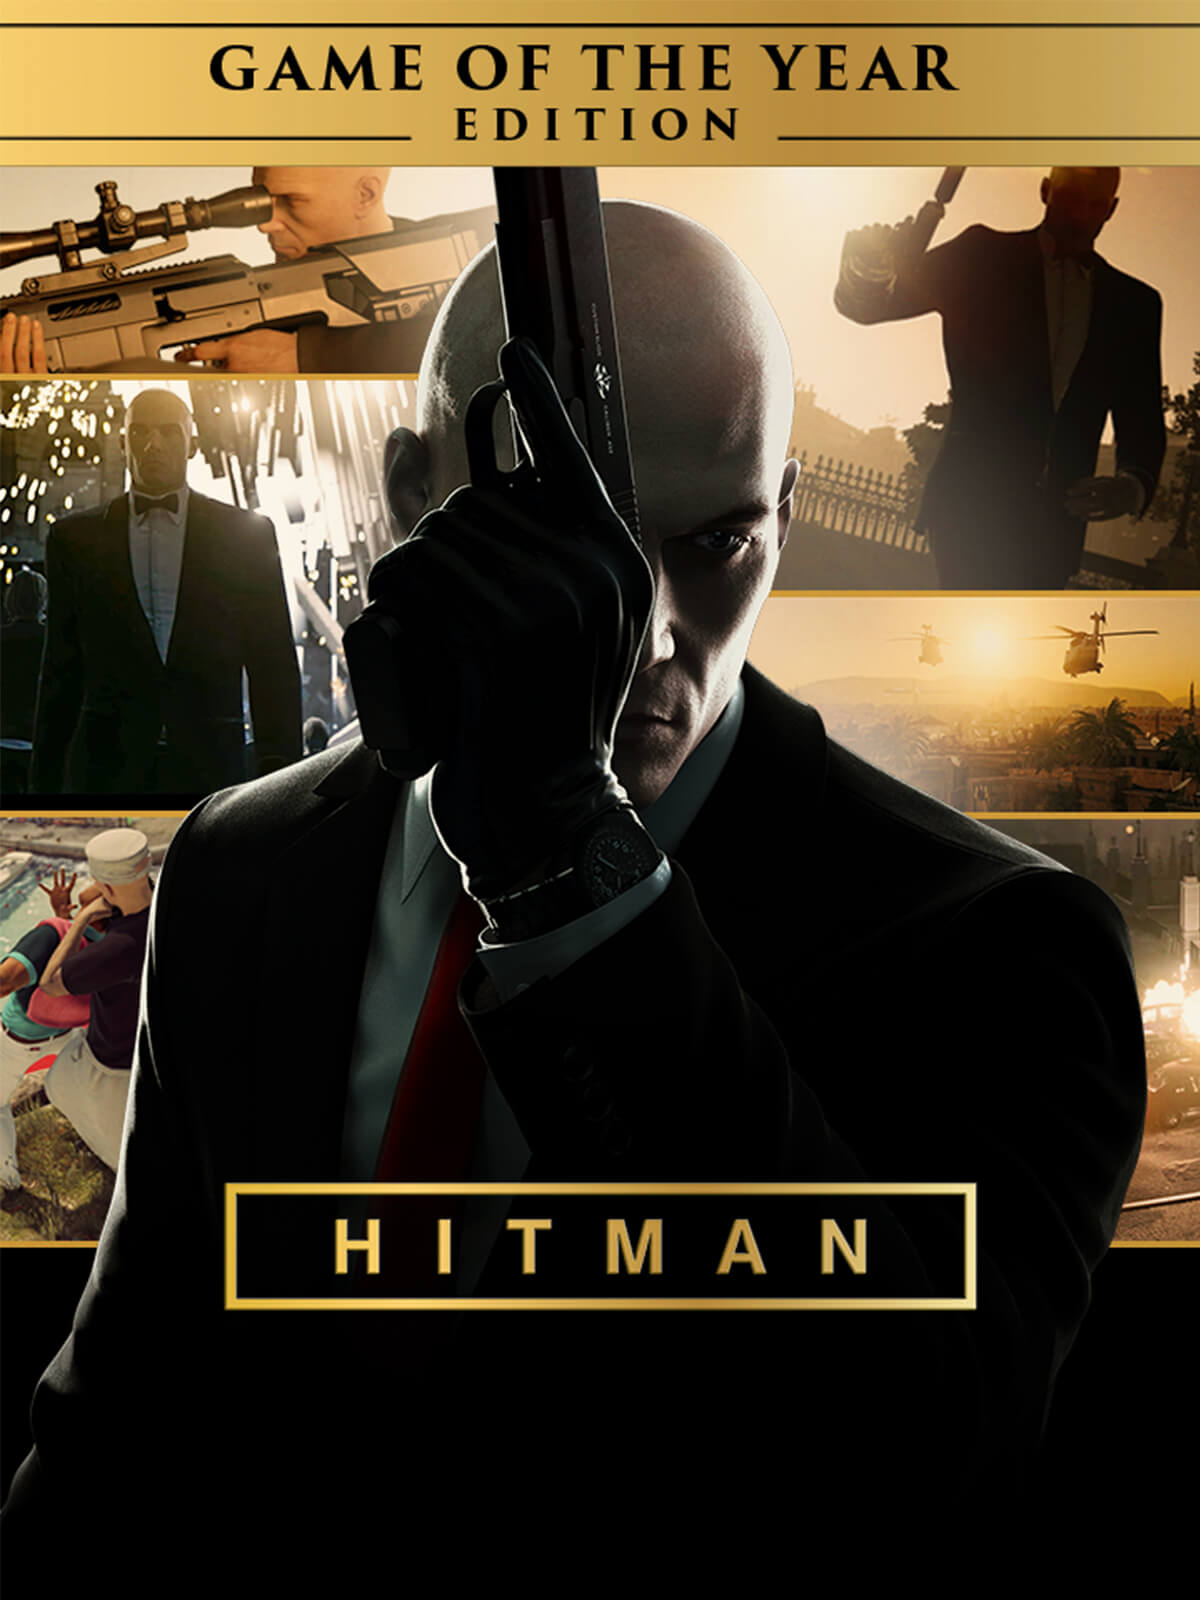 Hitman 2016 Hitman Game Of The Year Edition